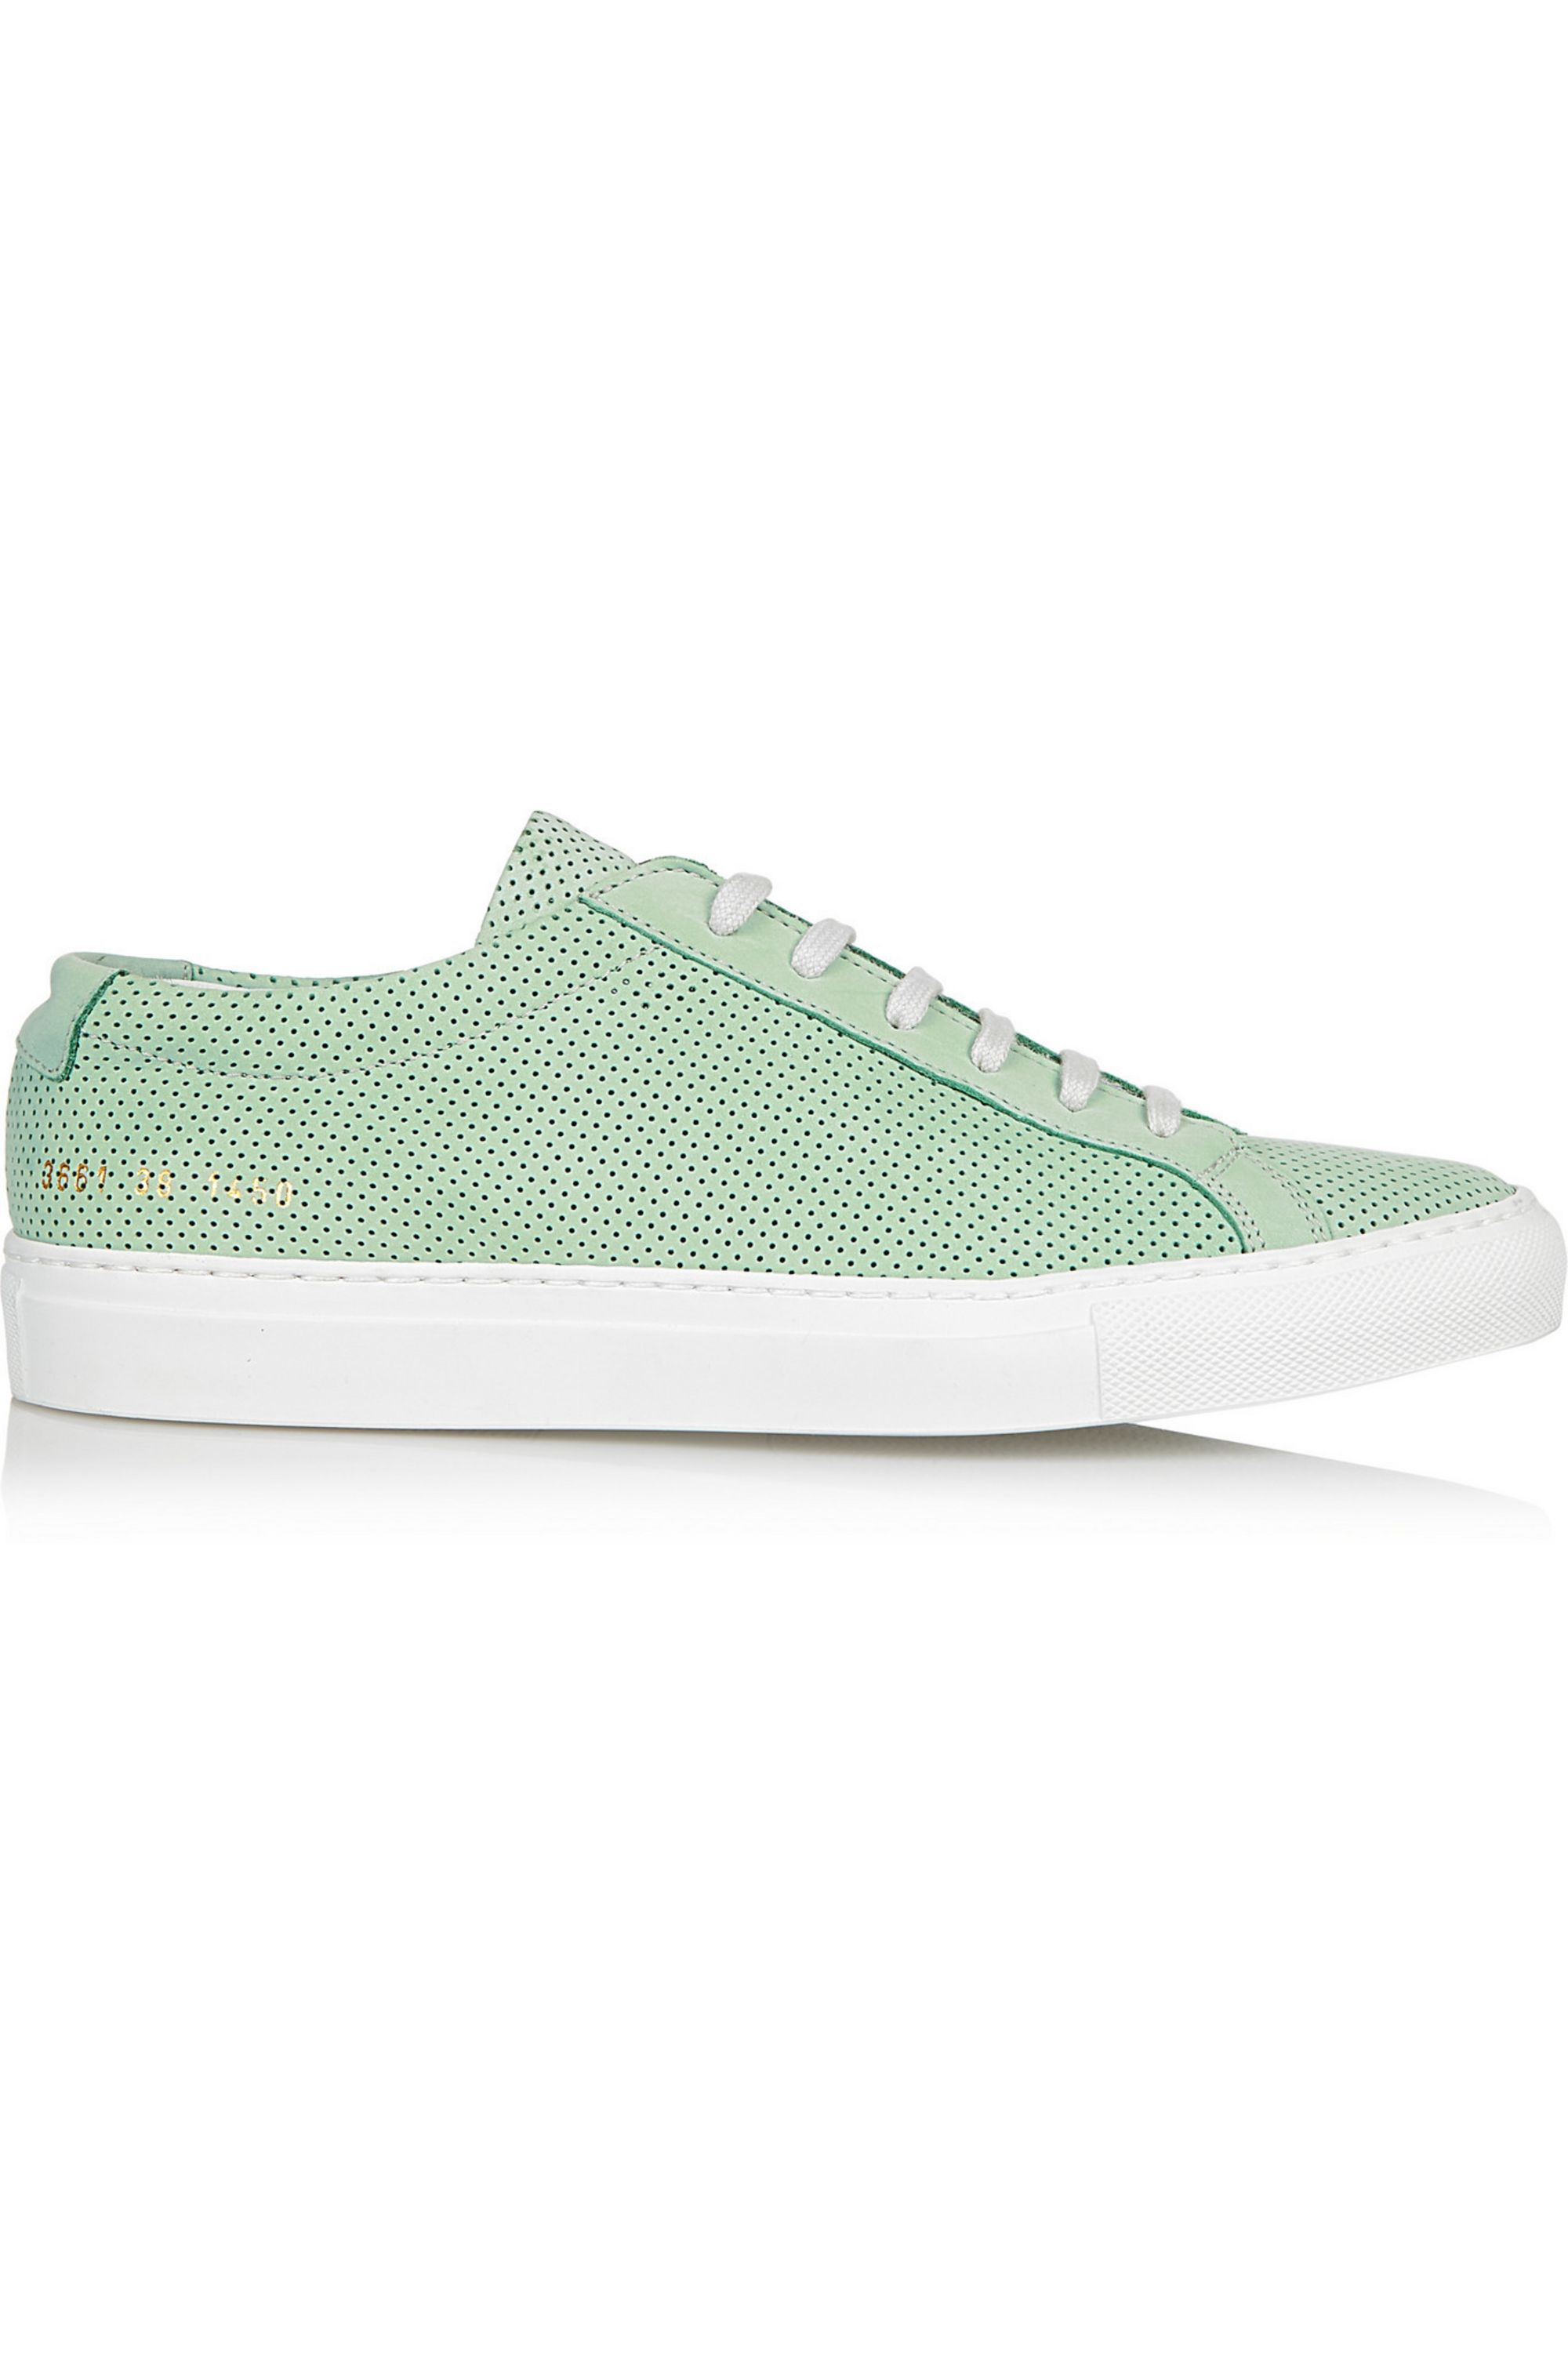 common projects mint green